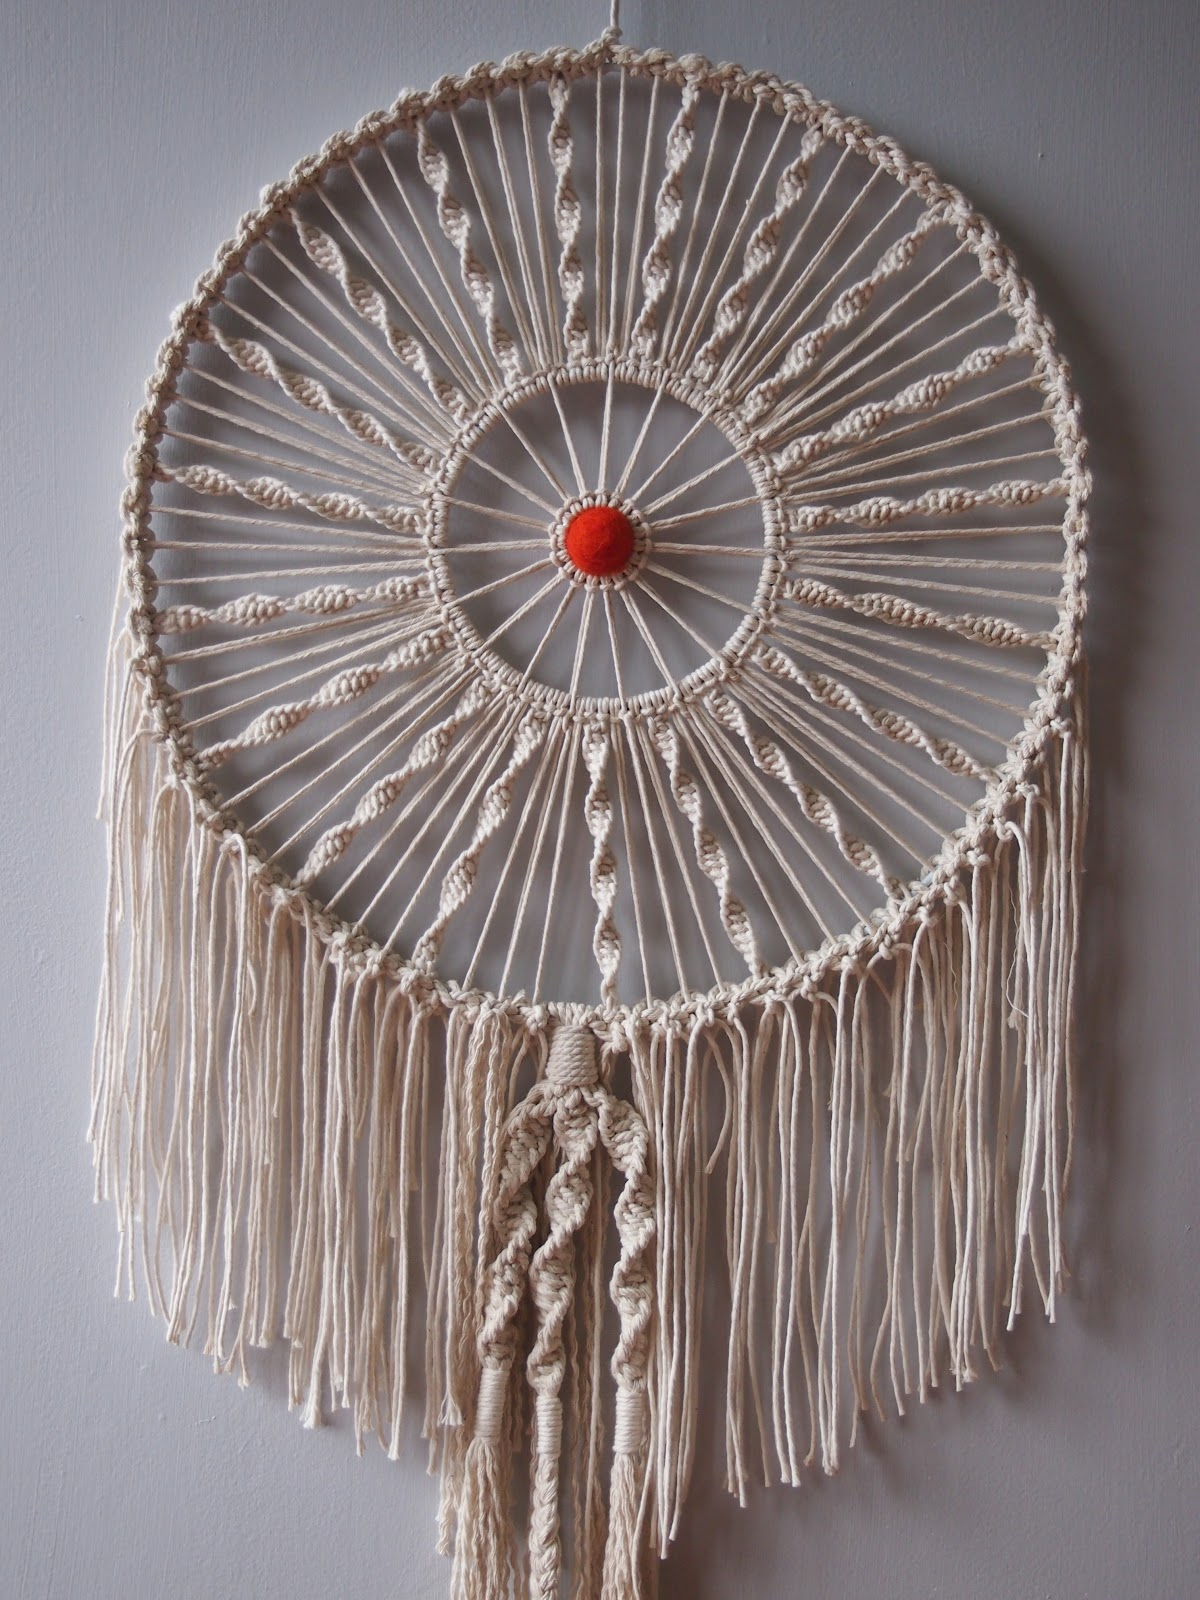 Stuff that makes my heart beat faster macrame revisited - C0m0 hacer manualidades ...